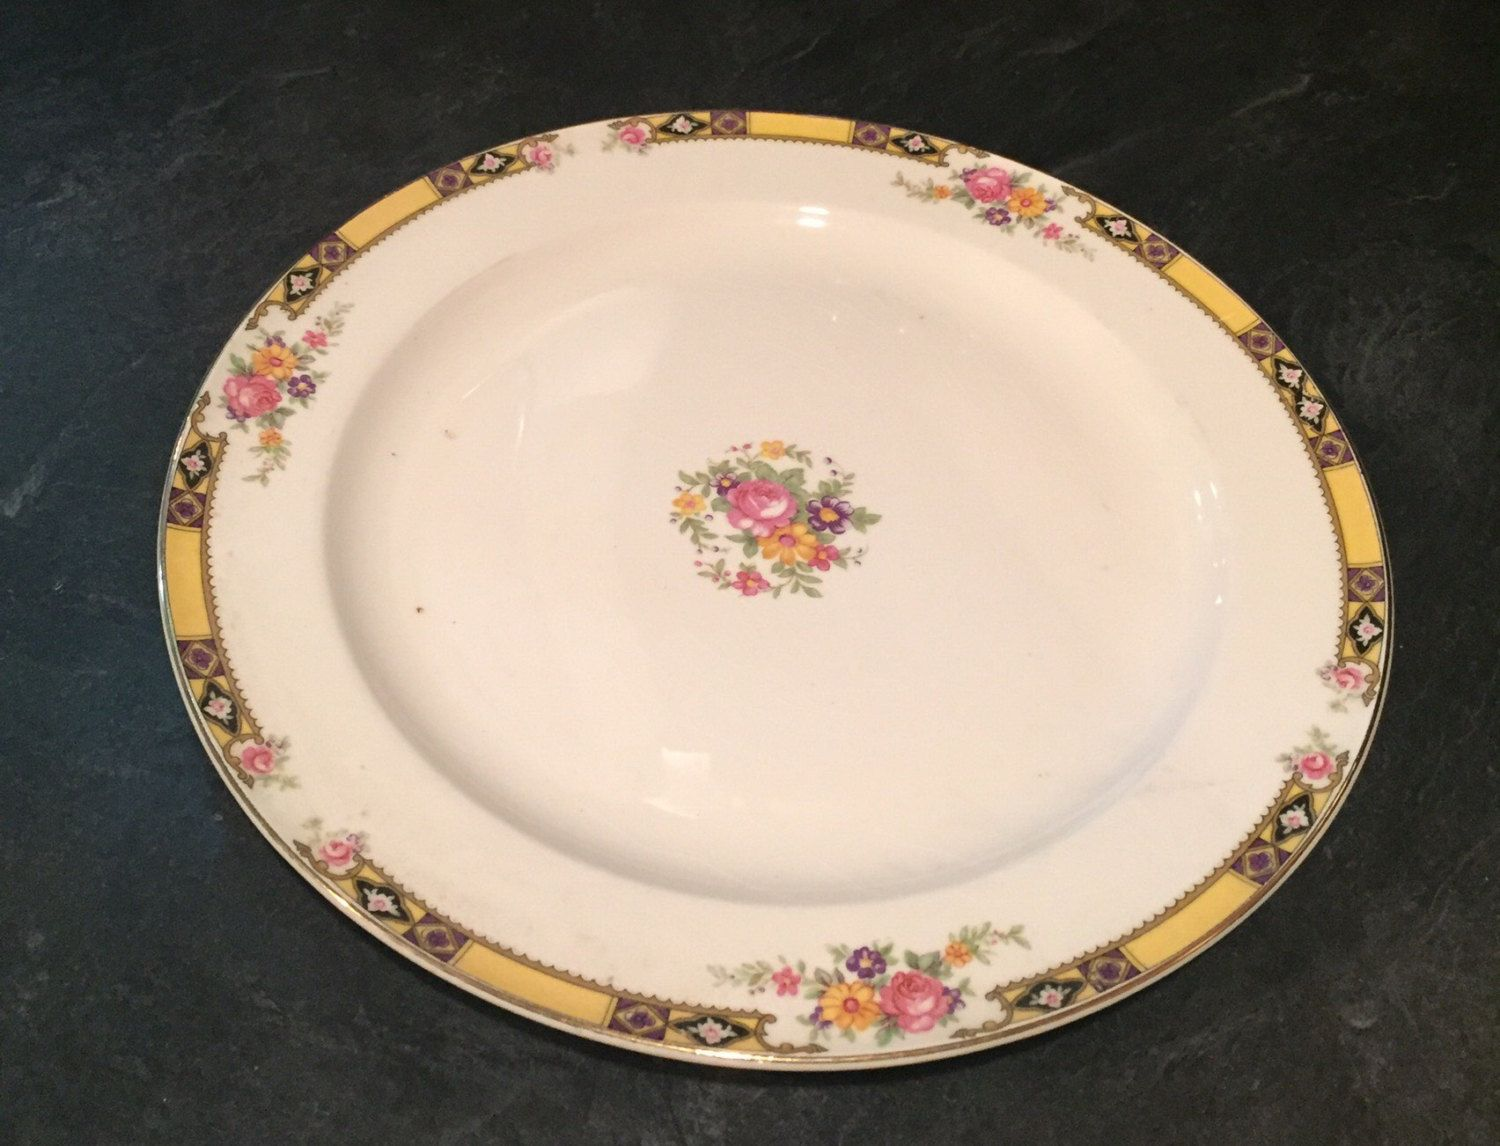 Luncheon Plate 9 inch Edwin M. Knowles China Company Made in USA 41-3 & Luncheon Plate 9 inch Edwin M. Knowles China Company Made in USA 41 ...